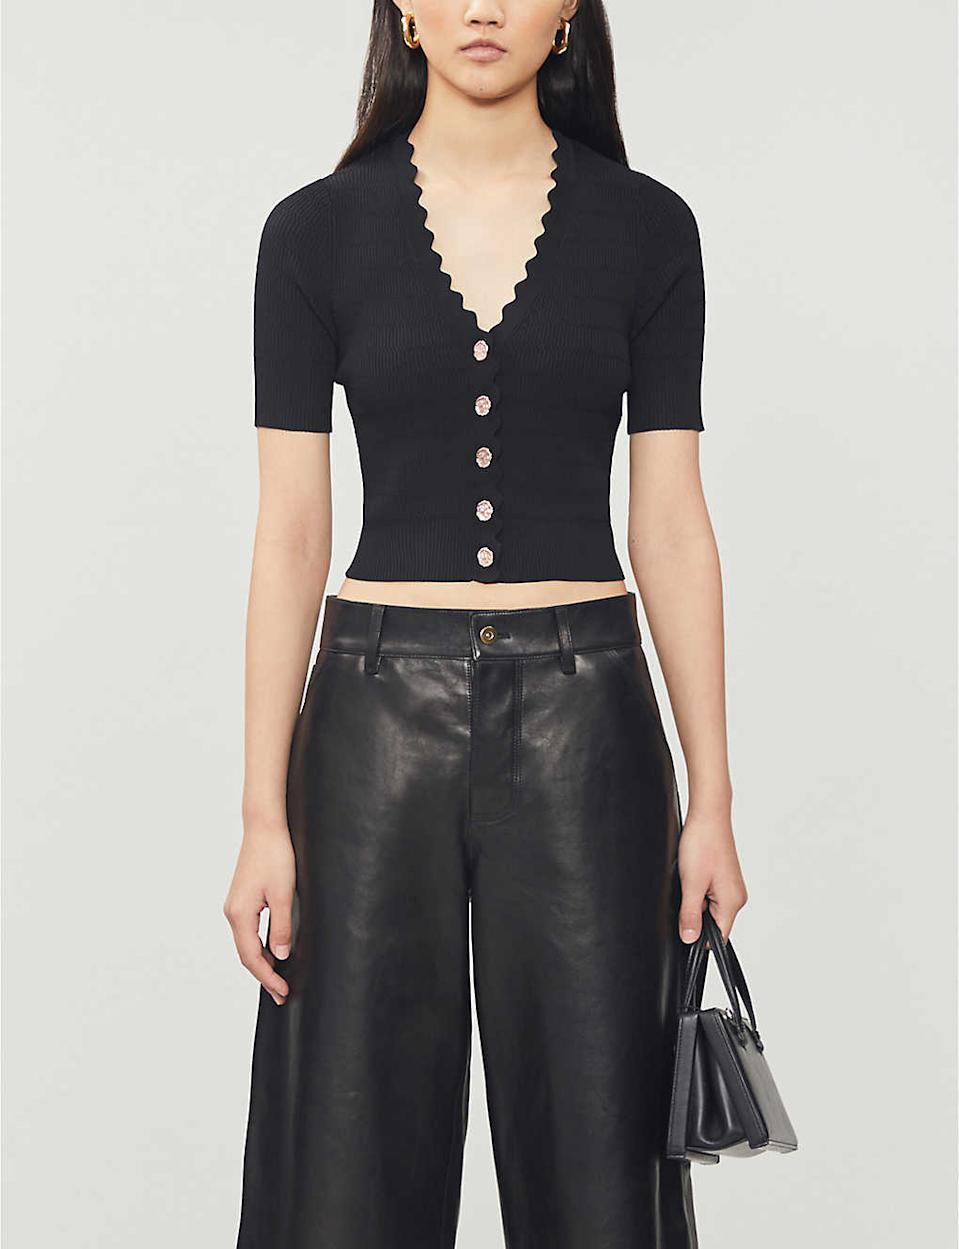 The £155 piece also comes in black (Selfridges)